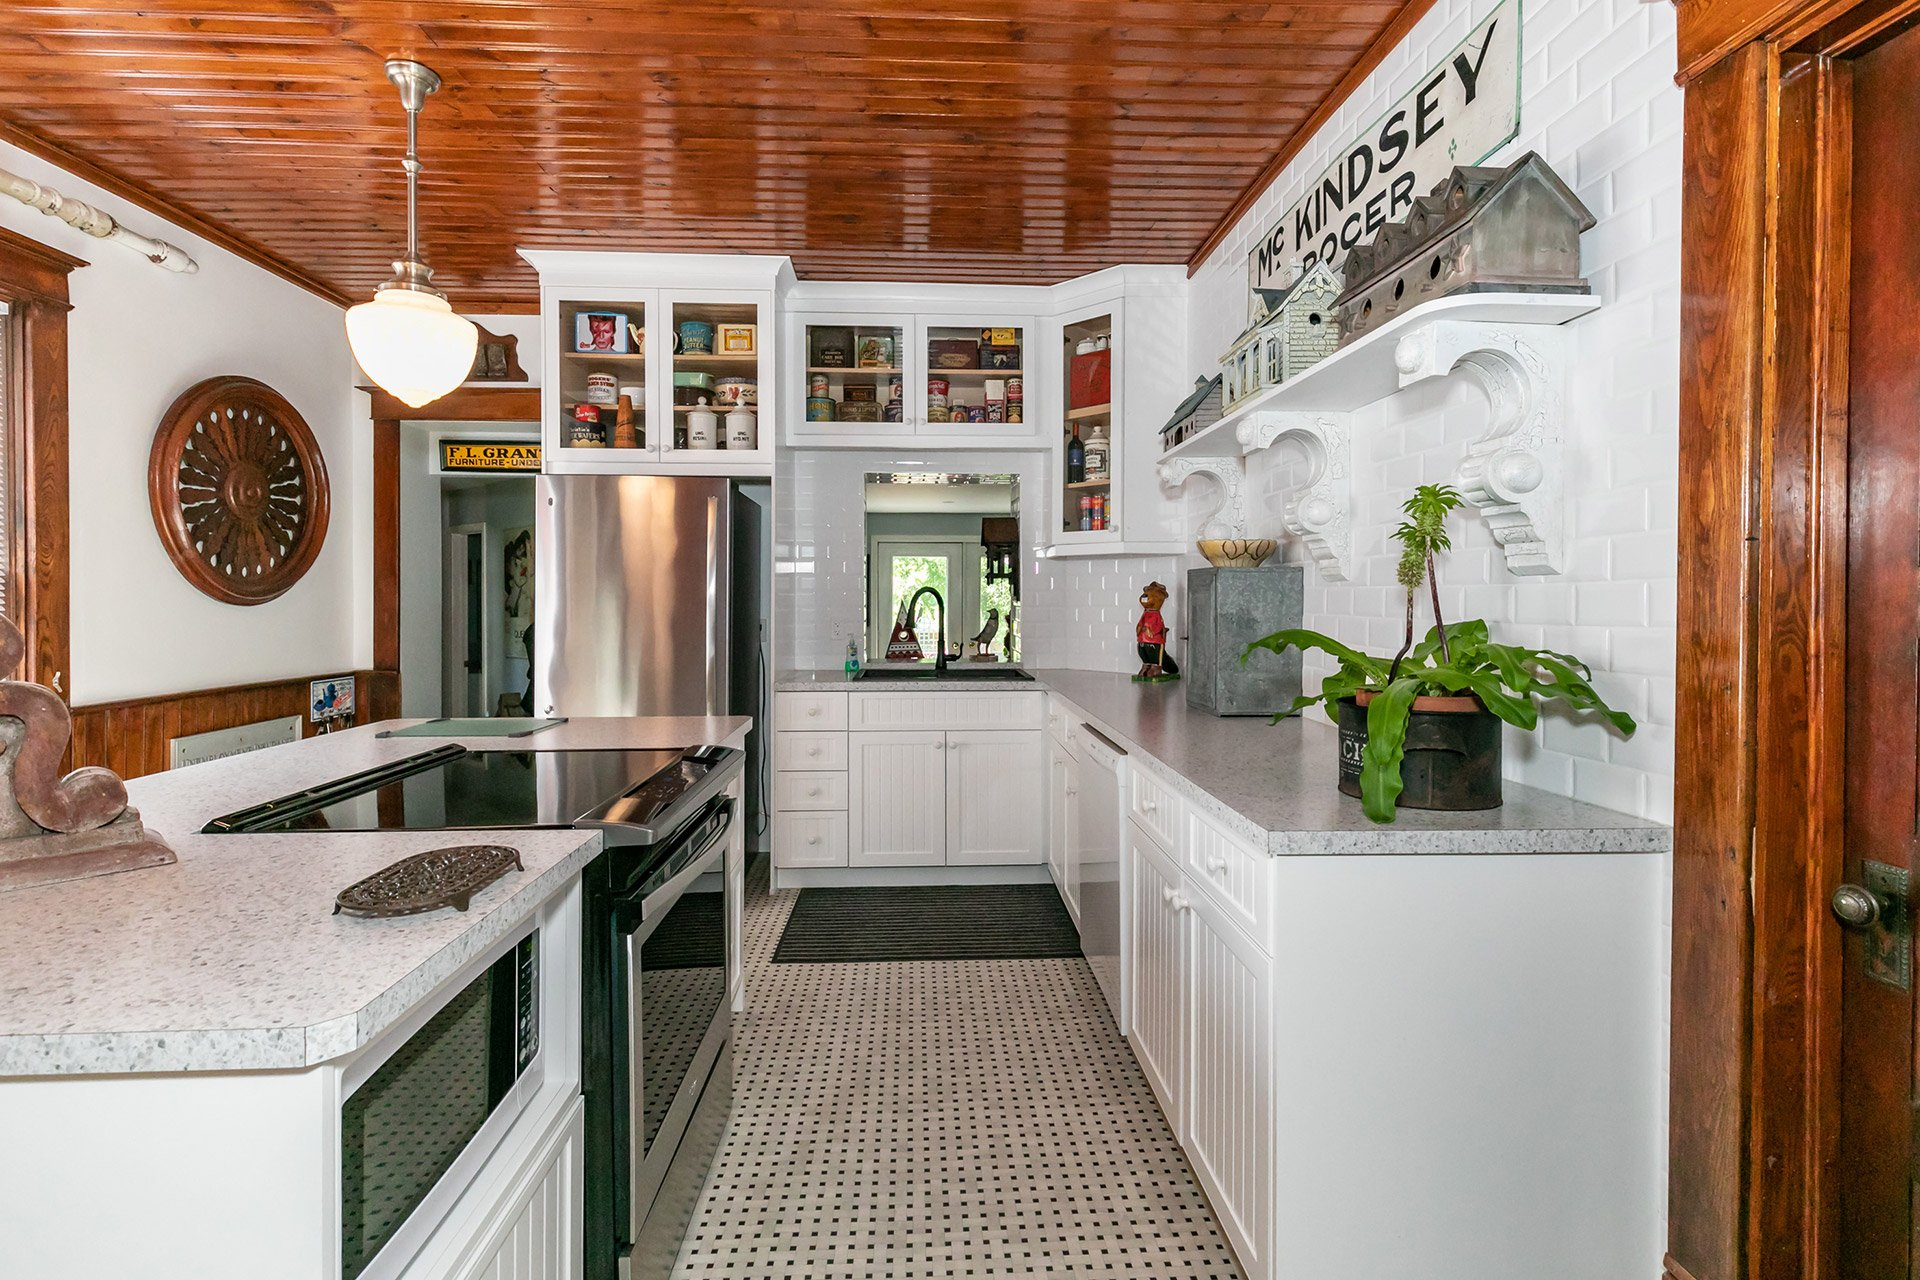 Photo of Ron McNeil Kitchen Renovation - After